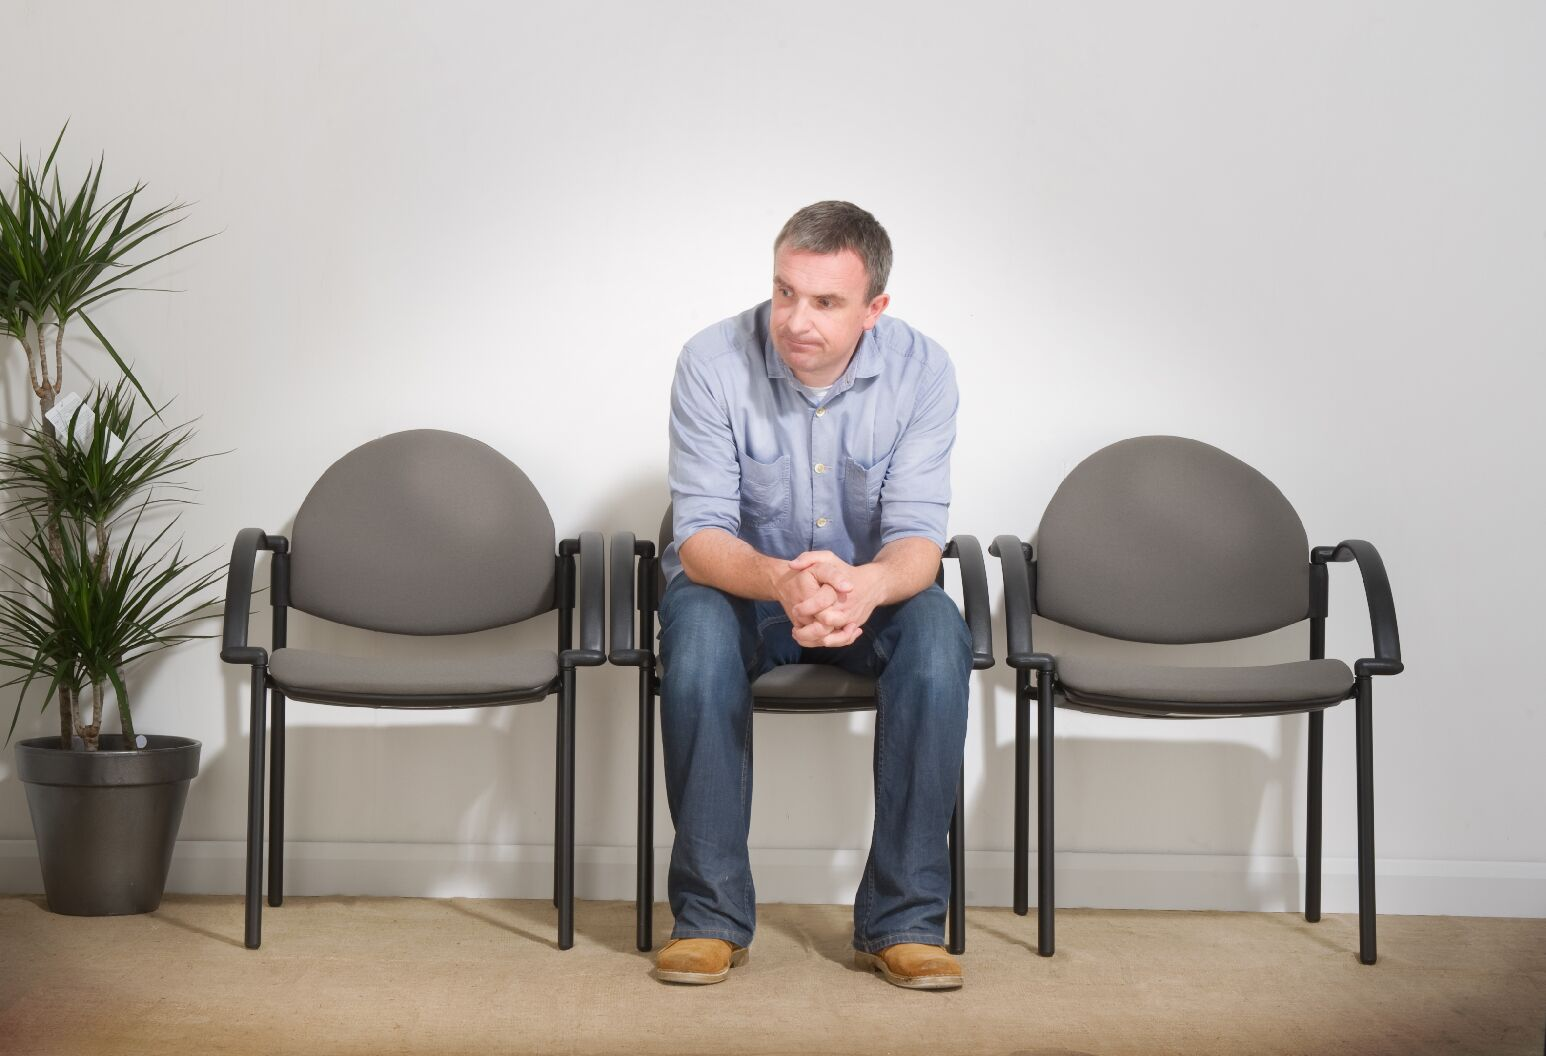 Man sitting alone in a doctors office waiting room.